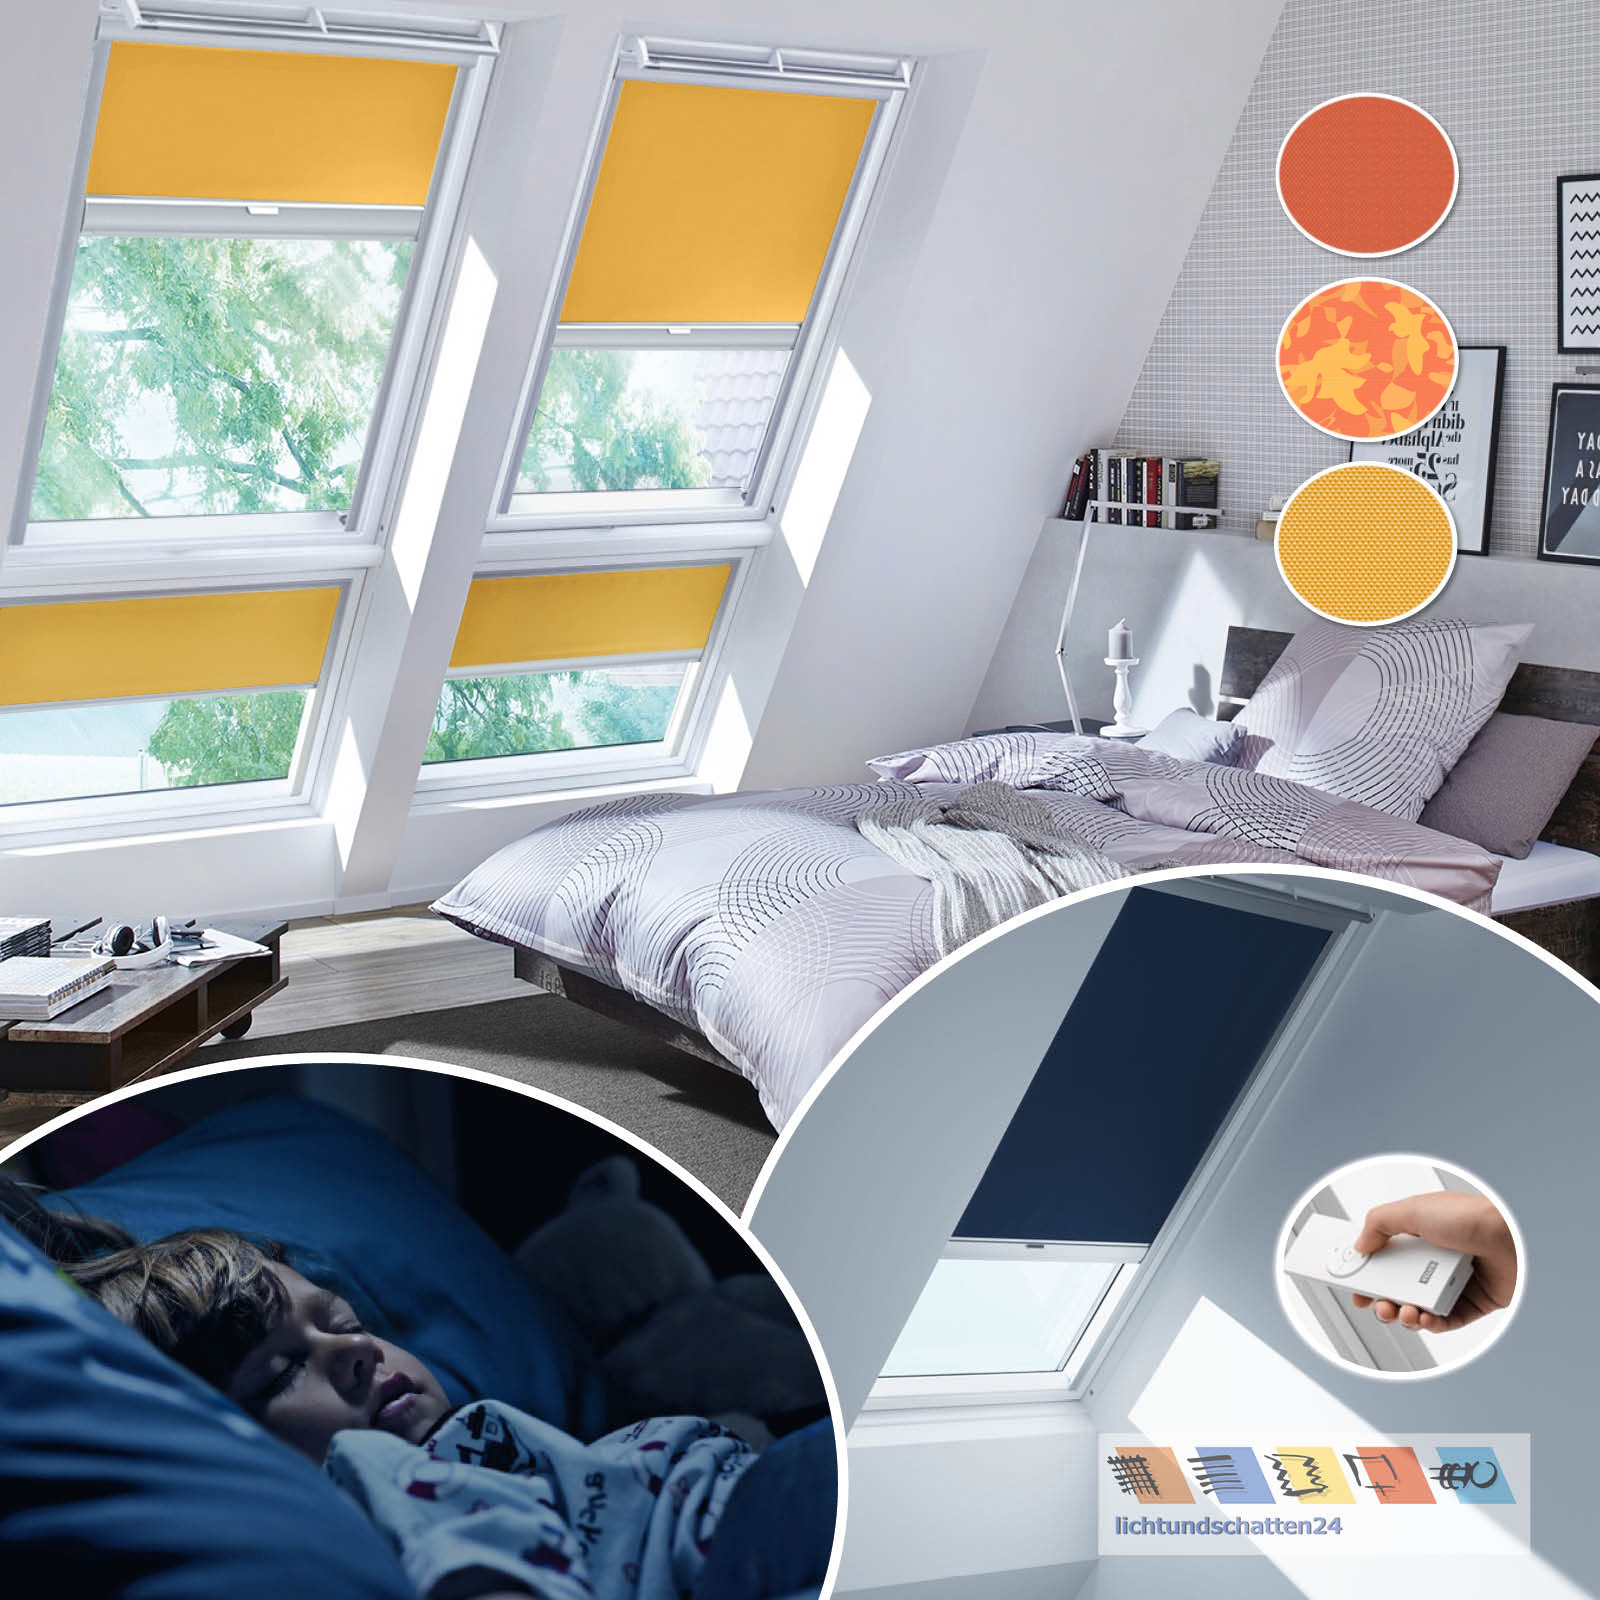 orig velux elektro verdunkelungsrollo 4568 4563 4564 ggl gpl ghl ggu gpu ghu ebay. Black Bedroom Furniture Sets. Home Design Ideas